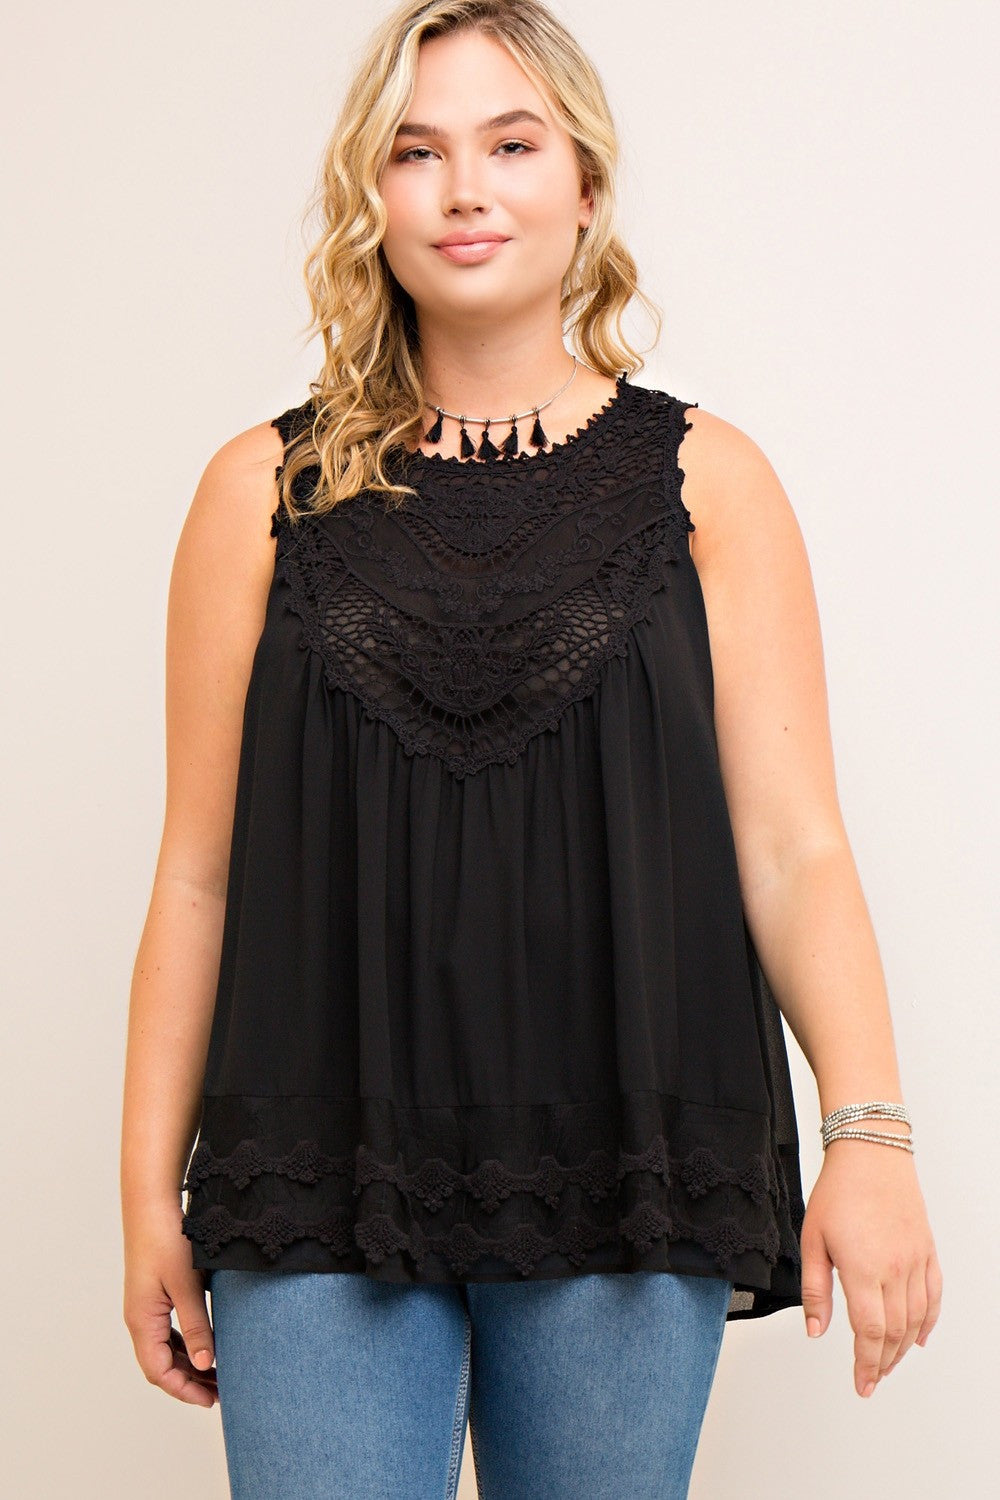 Front view young plus size woman wearing black colored sleeveless crochet trim top